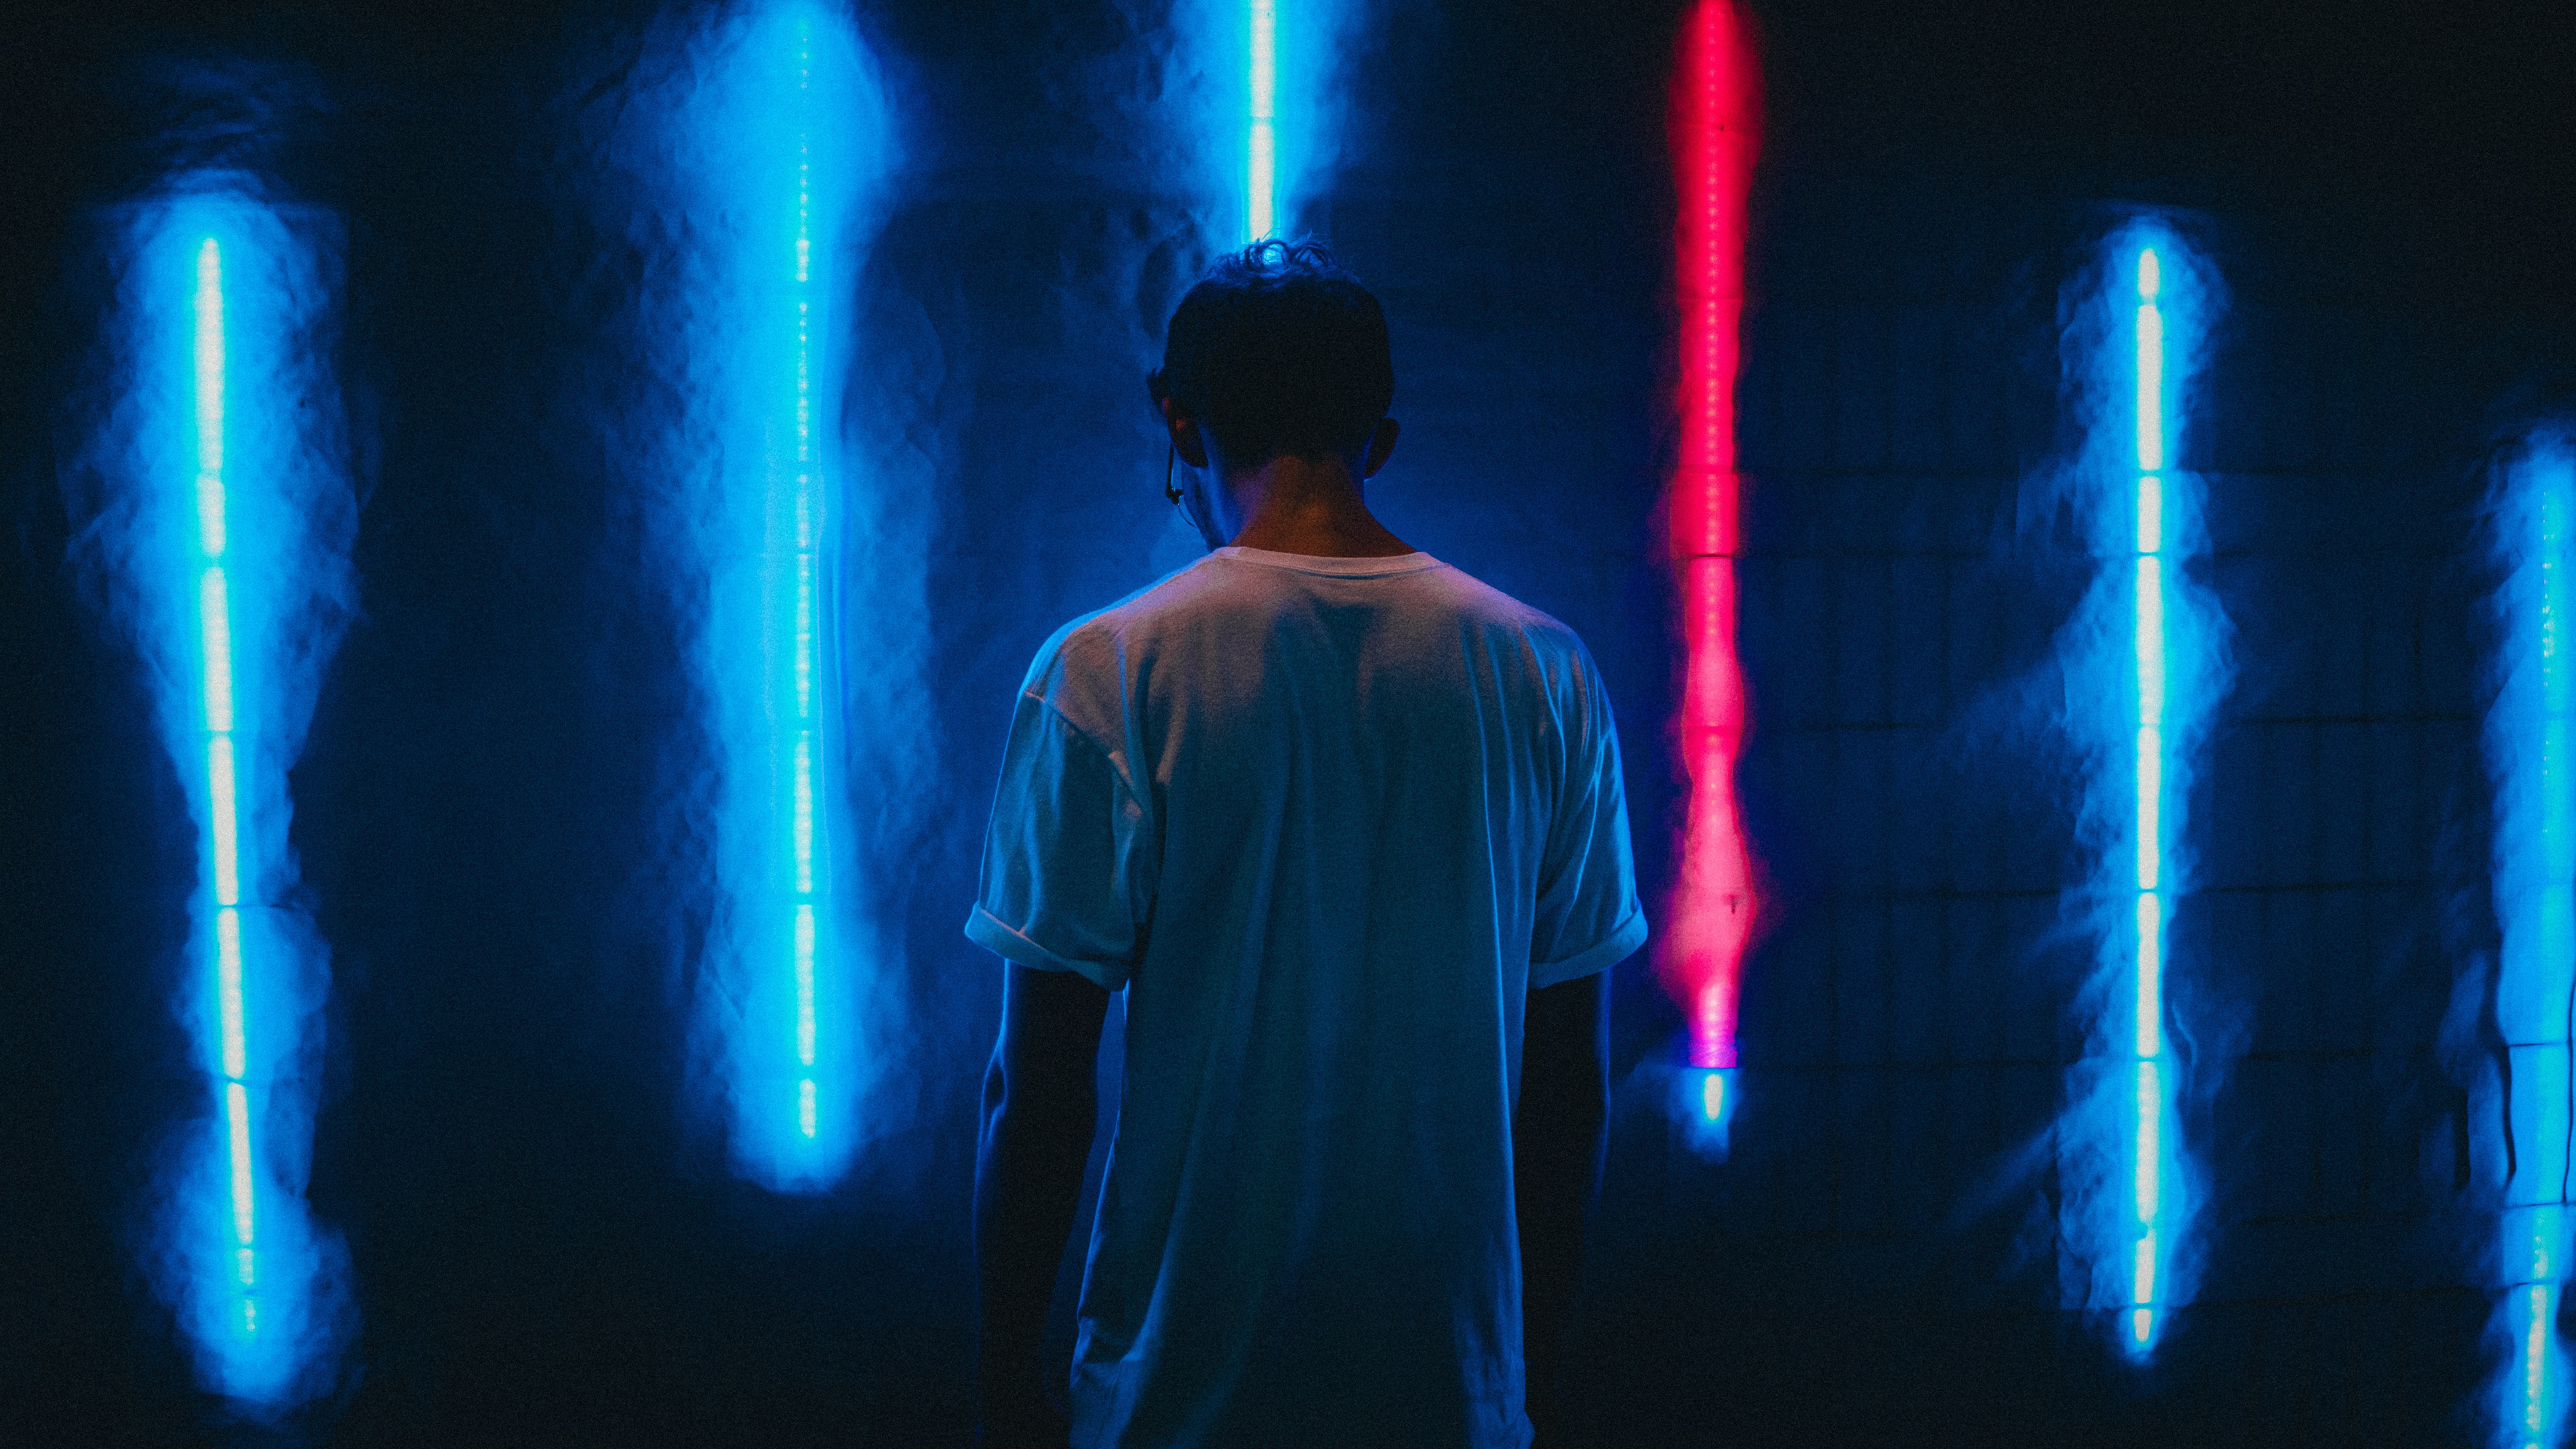 man standing near blue LED strips